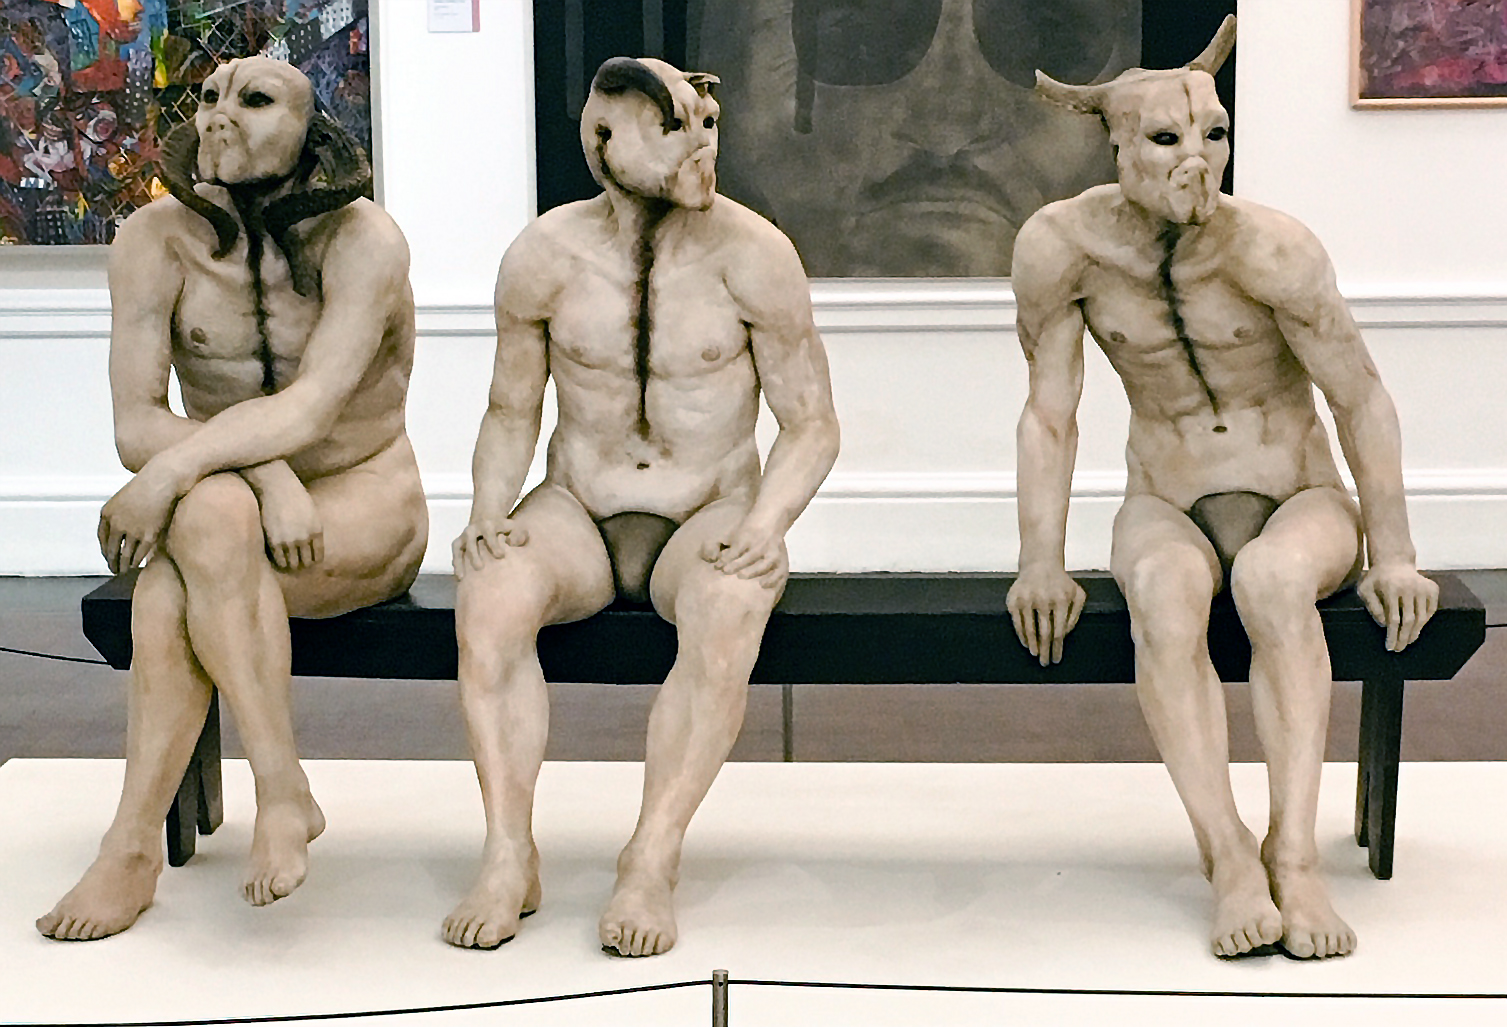 Jane Alexander, Butcher Boys, 1985/86, mixed media (South African National Gallery, Cape Town, photo: Goggins World, CC BY-NC-ND 2.0)